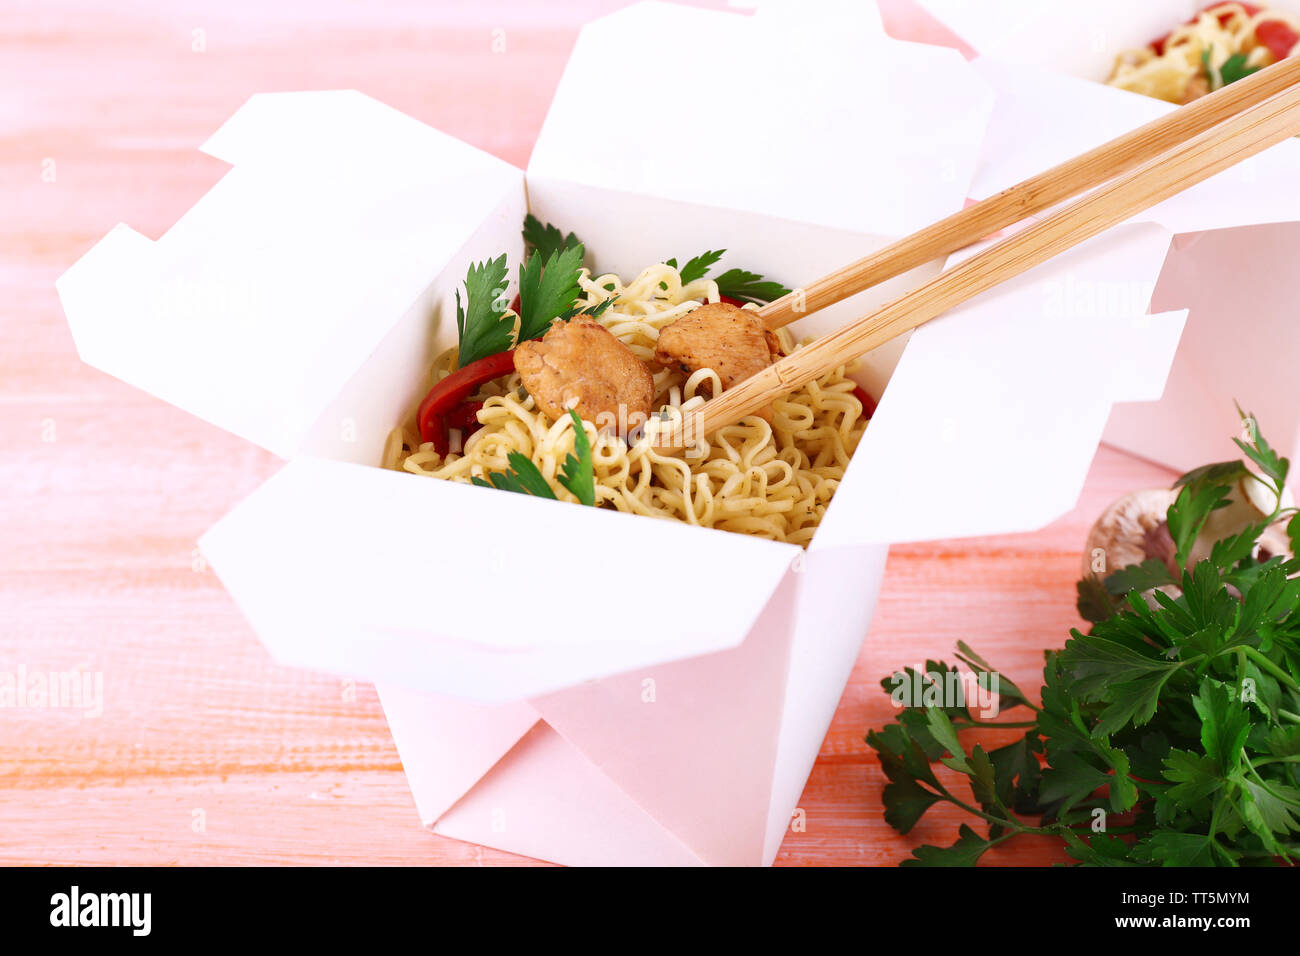 Chinese noodles with meat and pepper in takeaway box on pink background - Stock Image